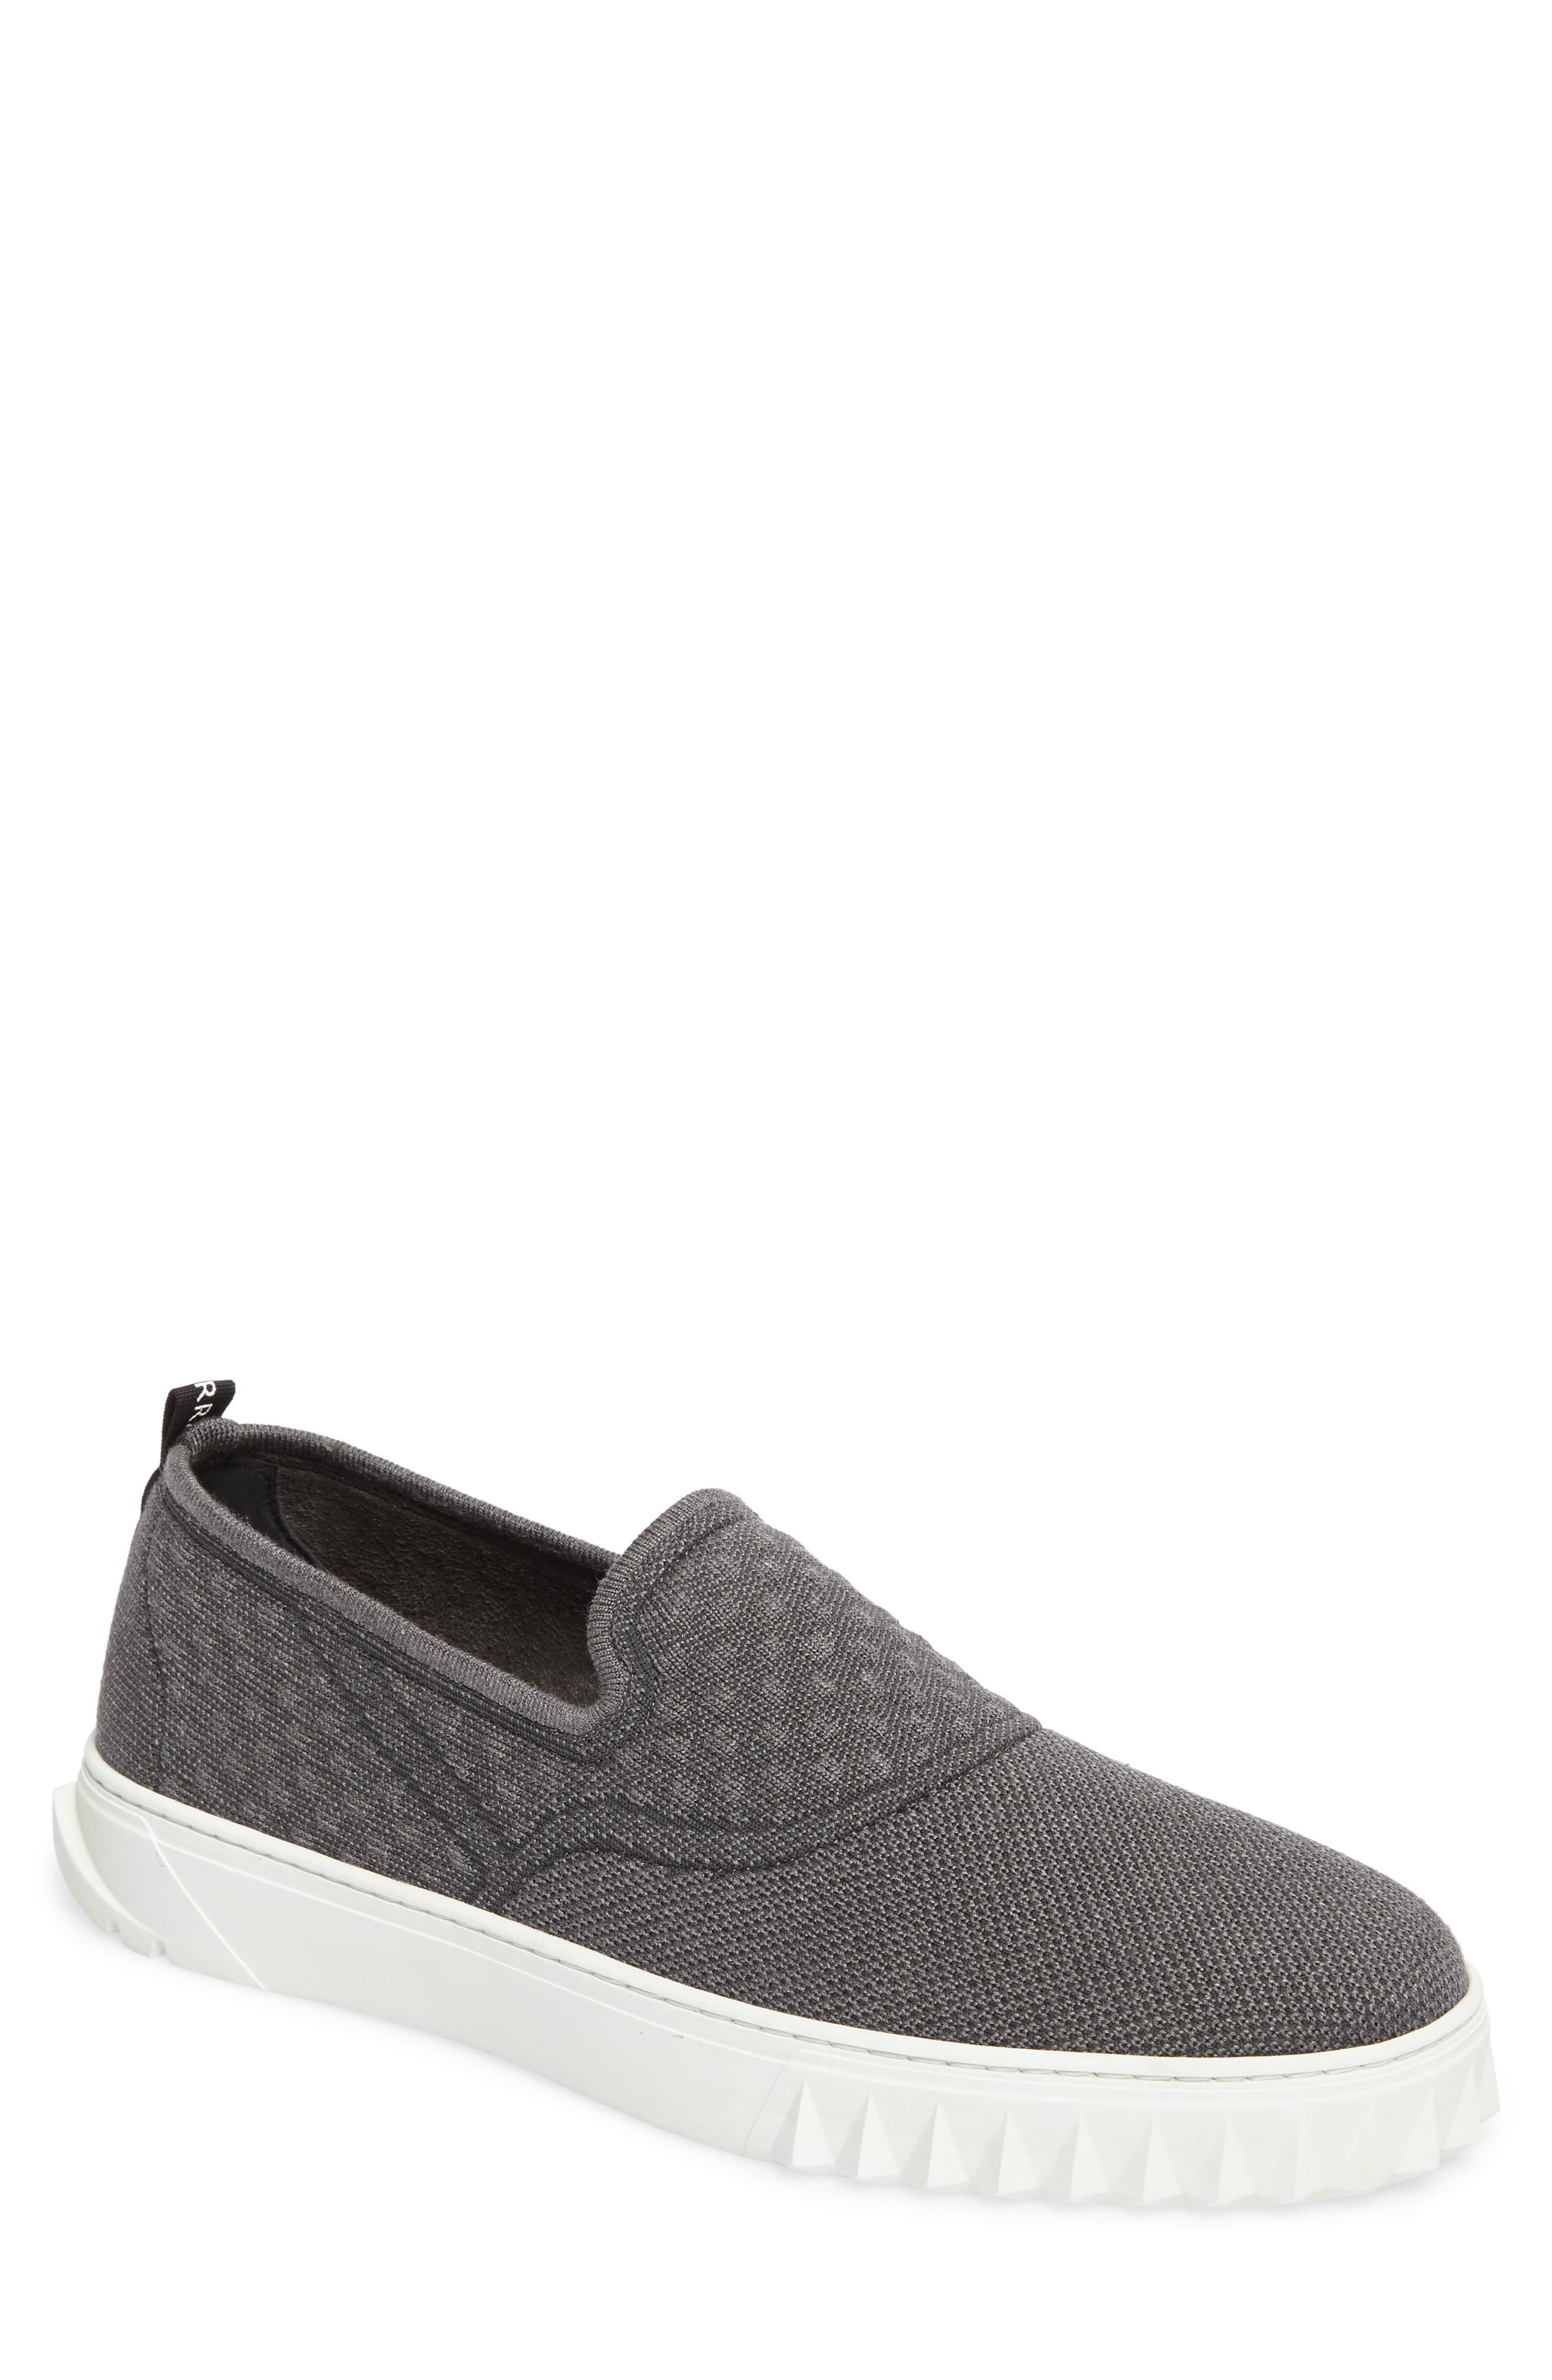 Clay Slip-On Sneaker,                         Main,                         color, Charcoal